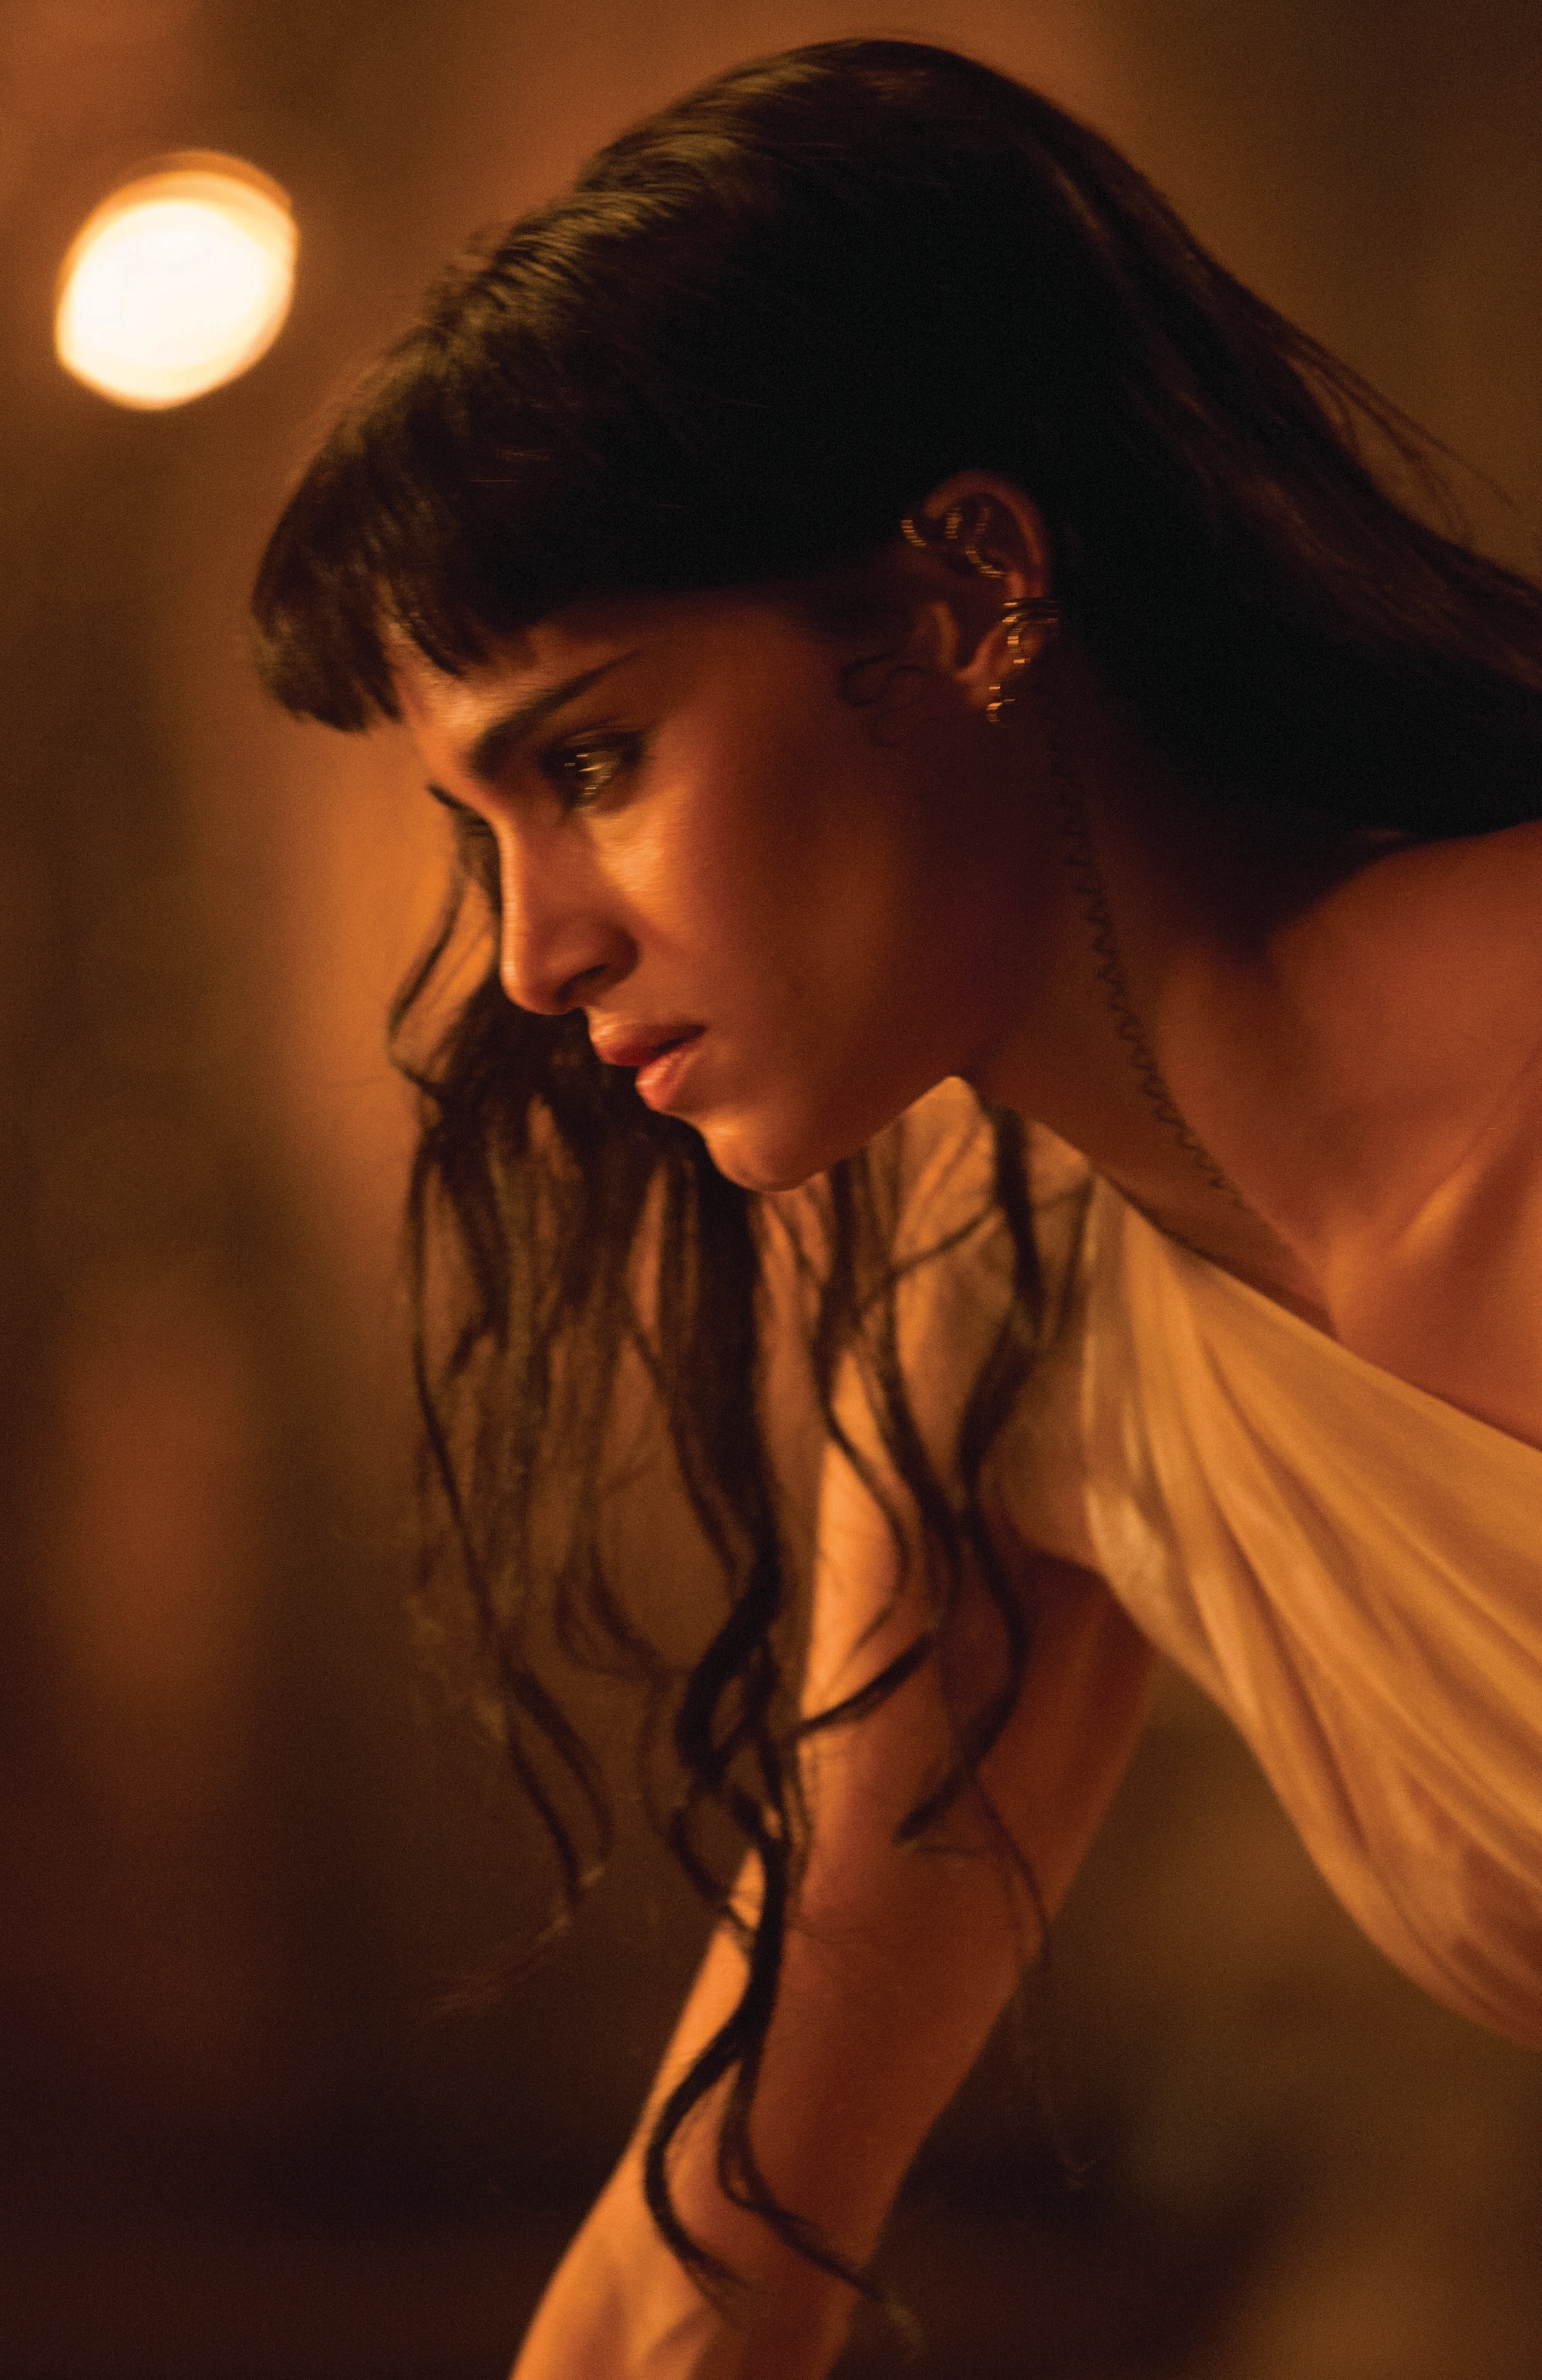 mummy 6 - The Mummy - New Video Featurette and Massive Image Gallery